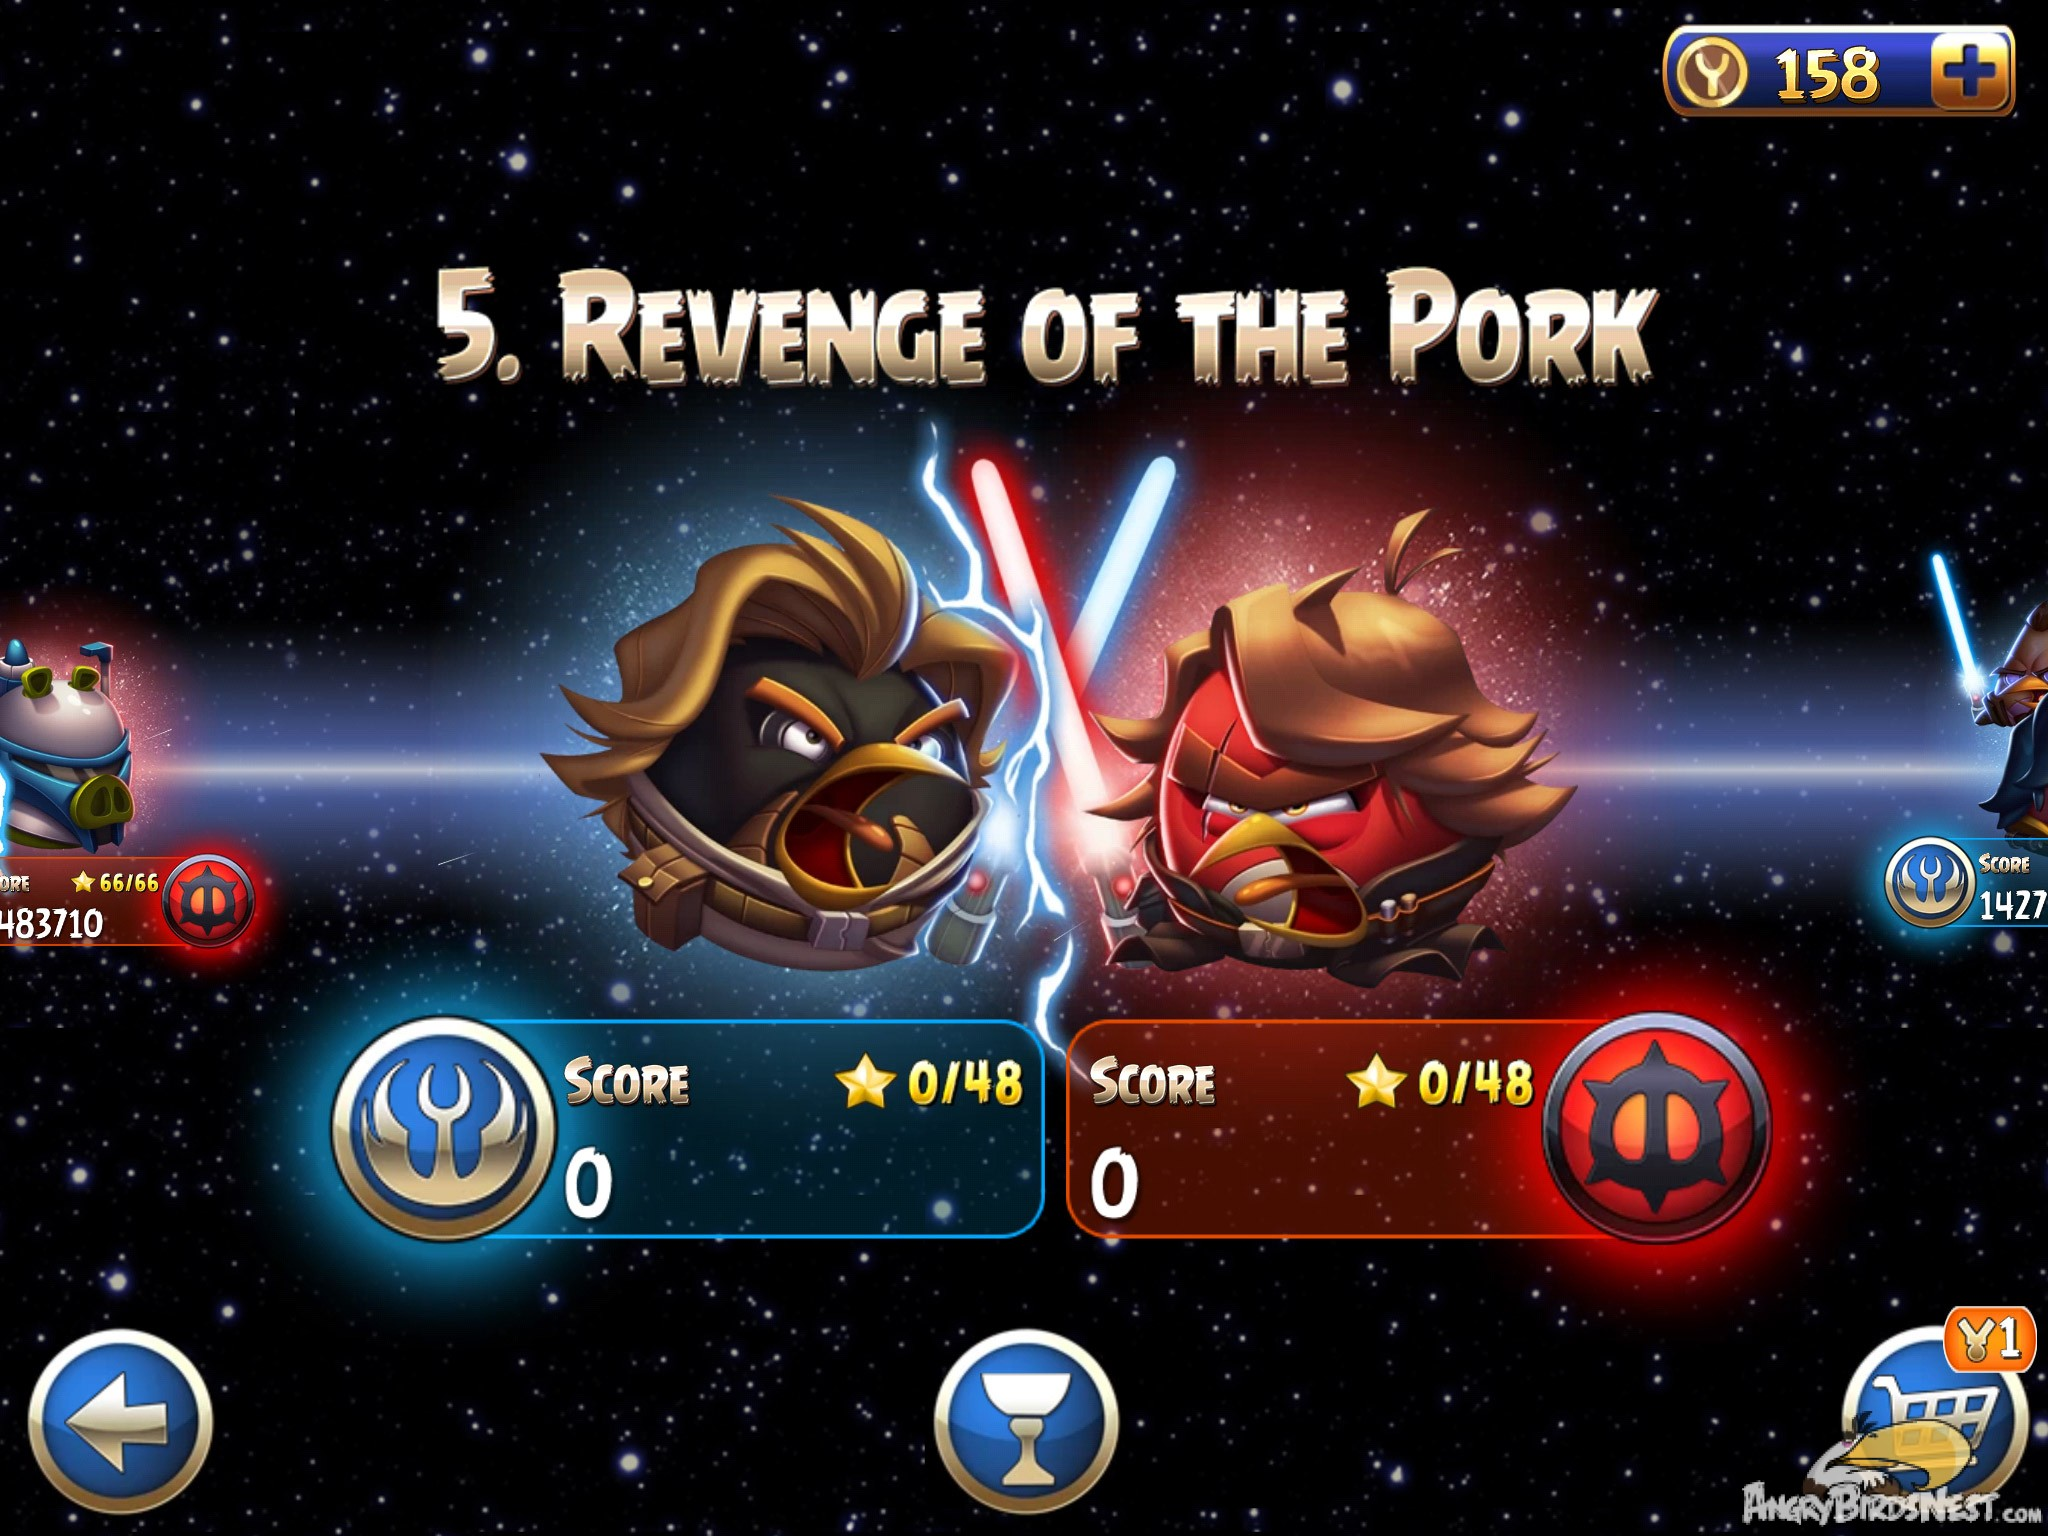 Category: Angry Birds Games, Dowload Angry Birds Star Wars 2, Popular Games.Game Info: Angry Birds Star Wars 2. How to Play: Use your mouse and enjoy the fight